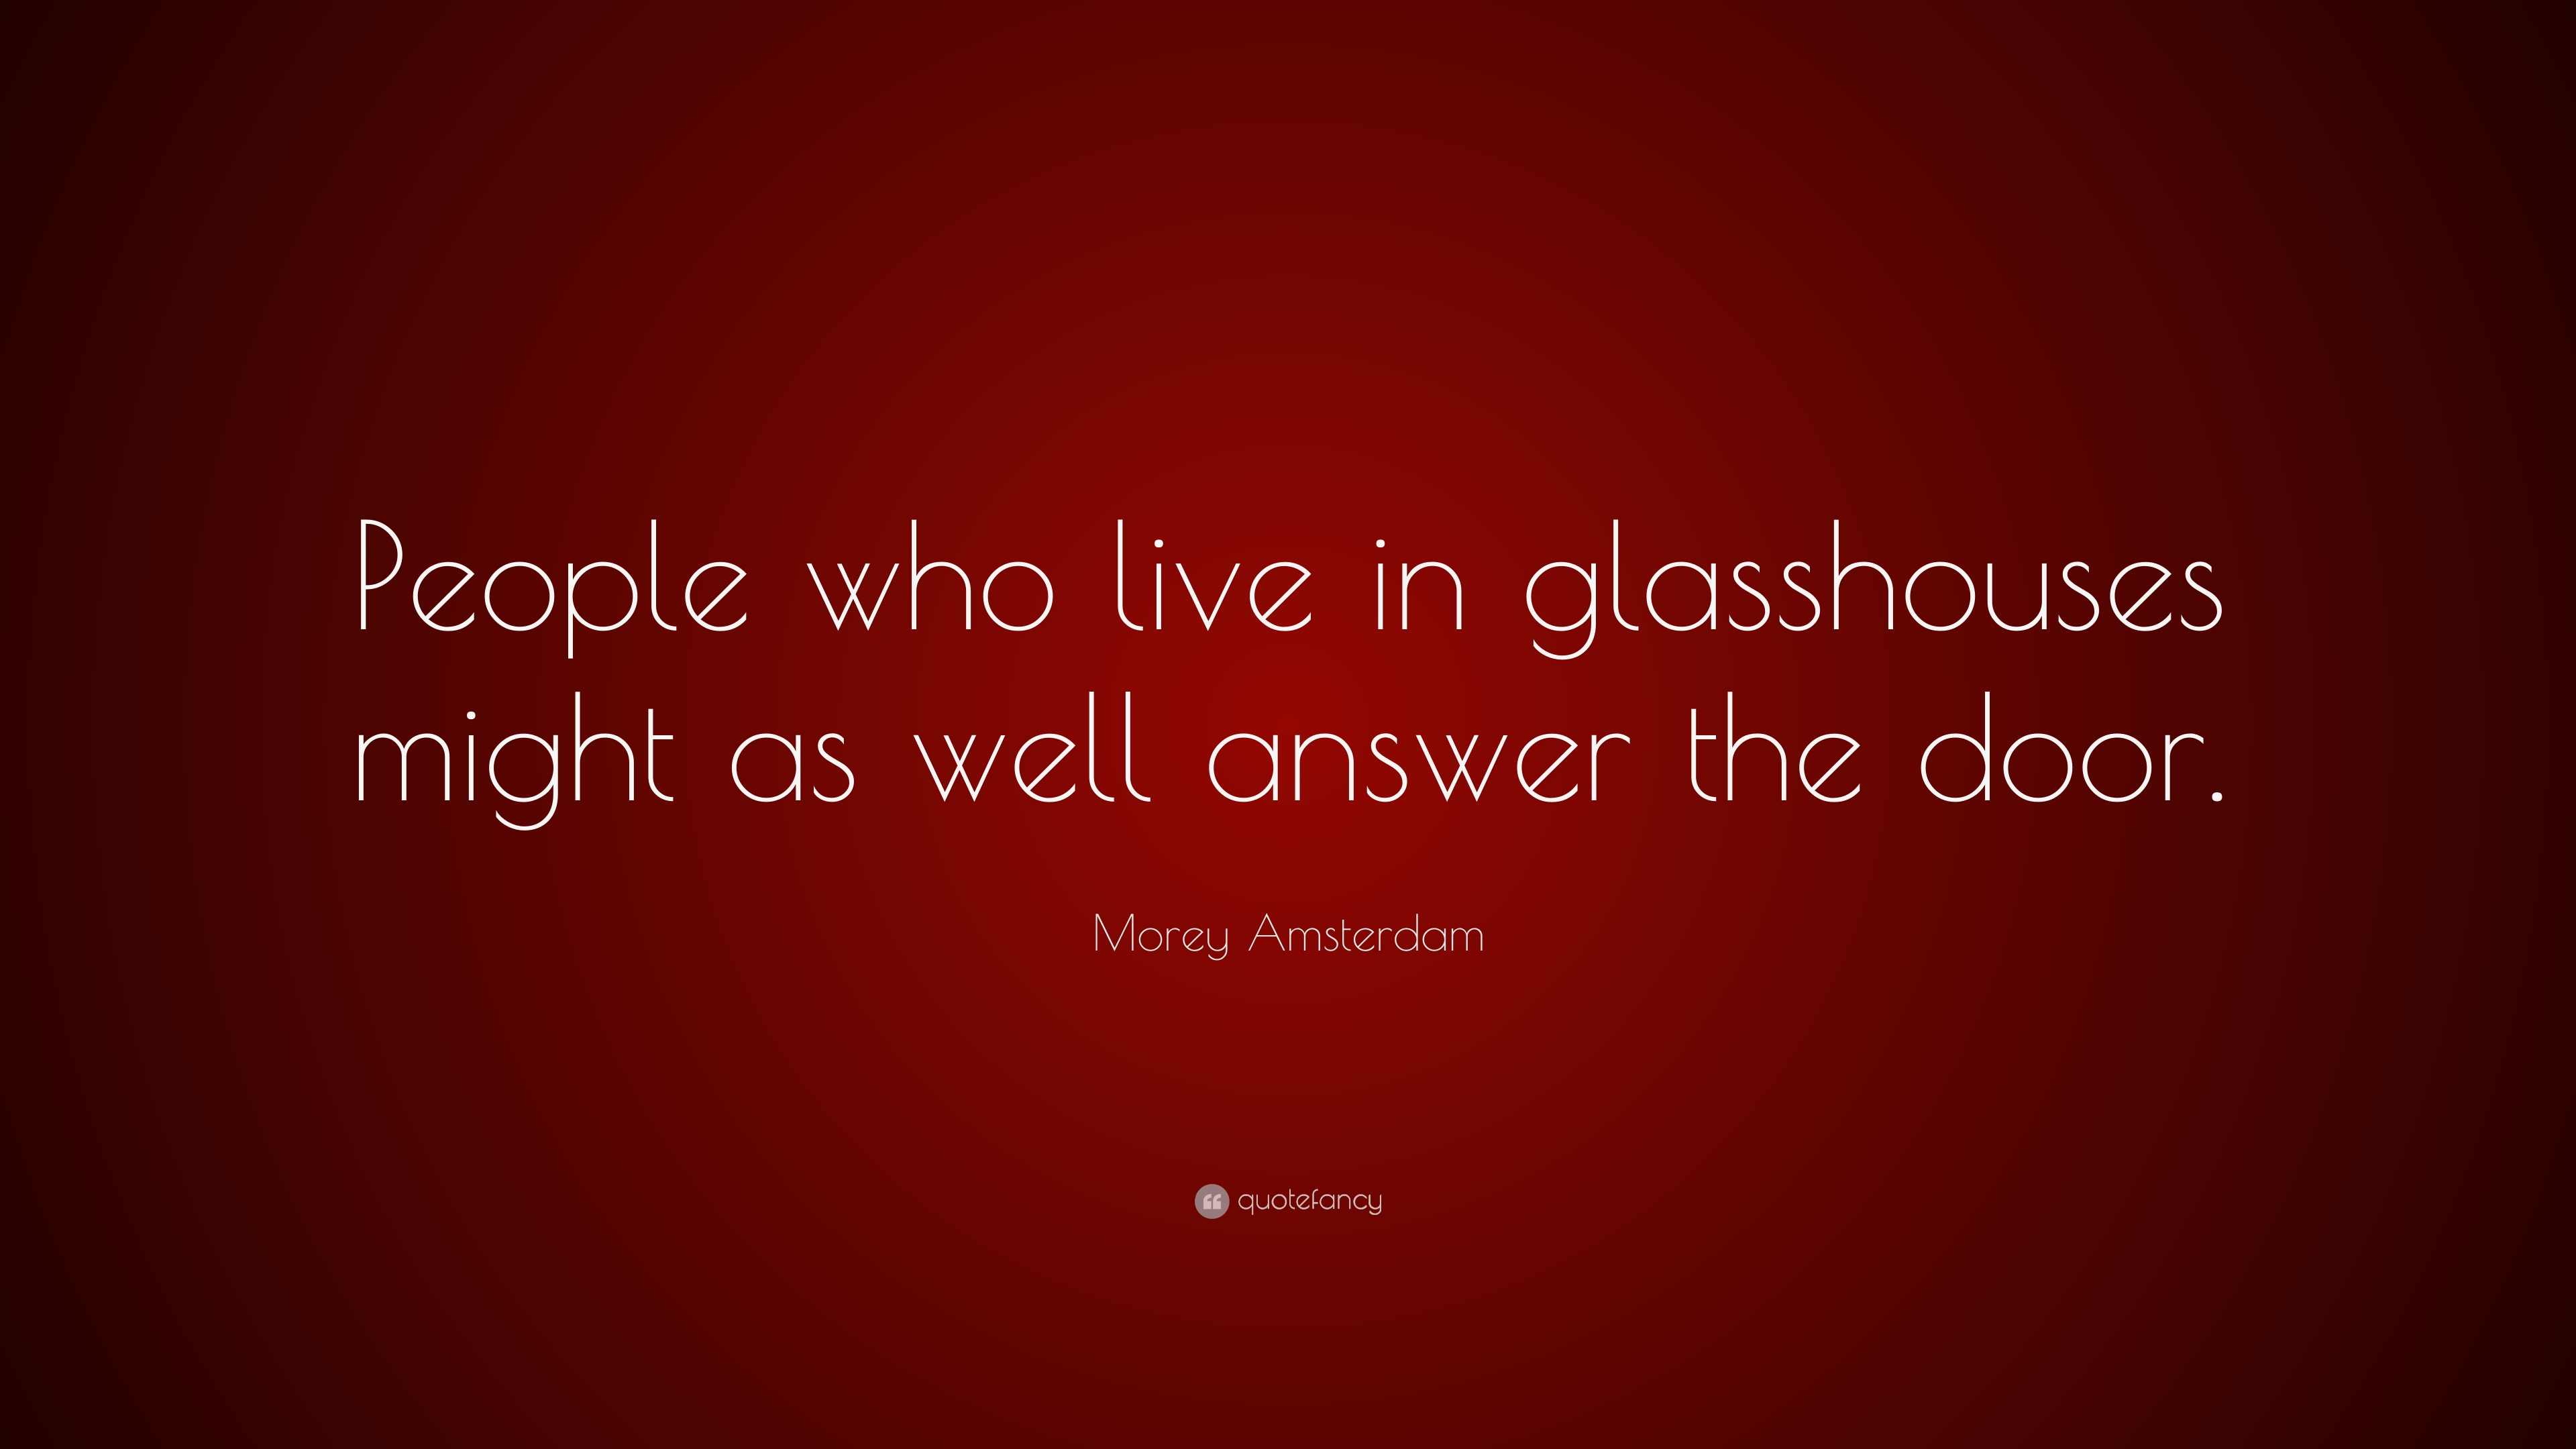 Amsterdam Quotes Beauteous Morey Amsterdam Quotes 5 Wallpapers  Quotefancy